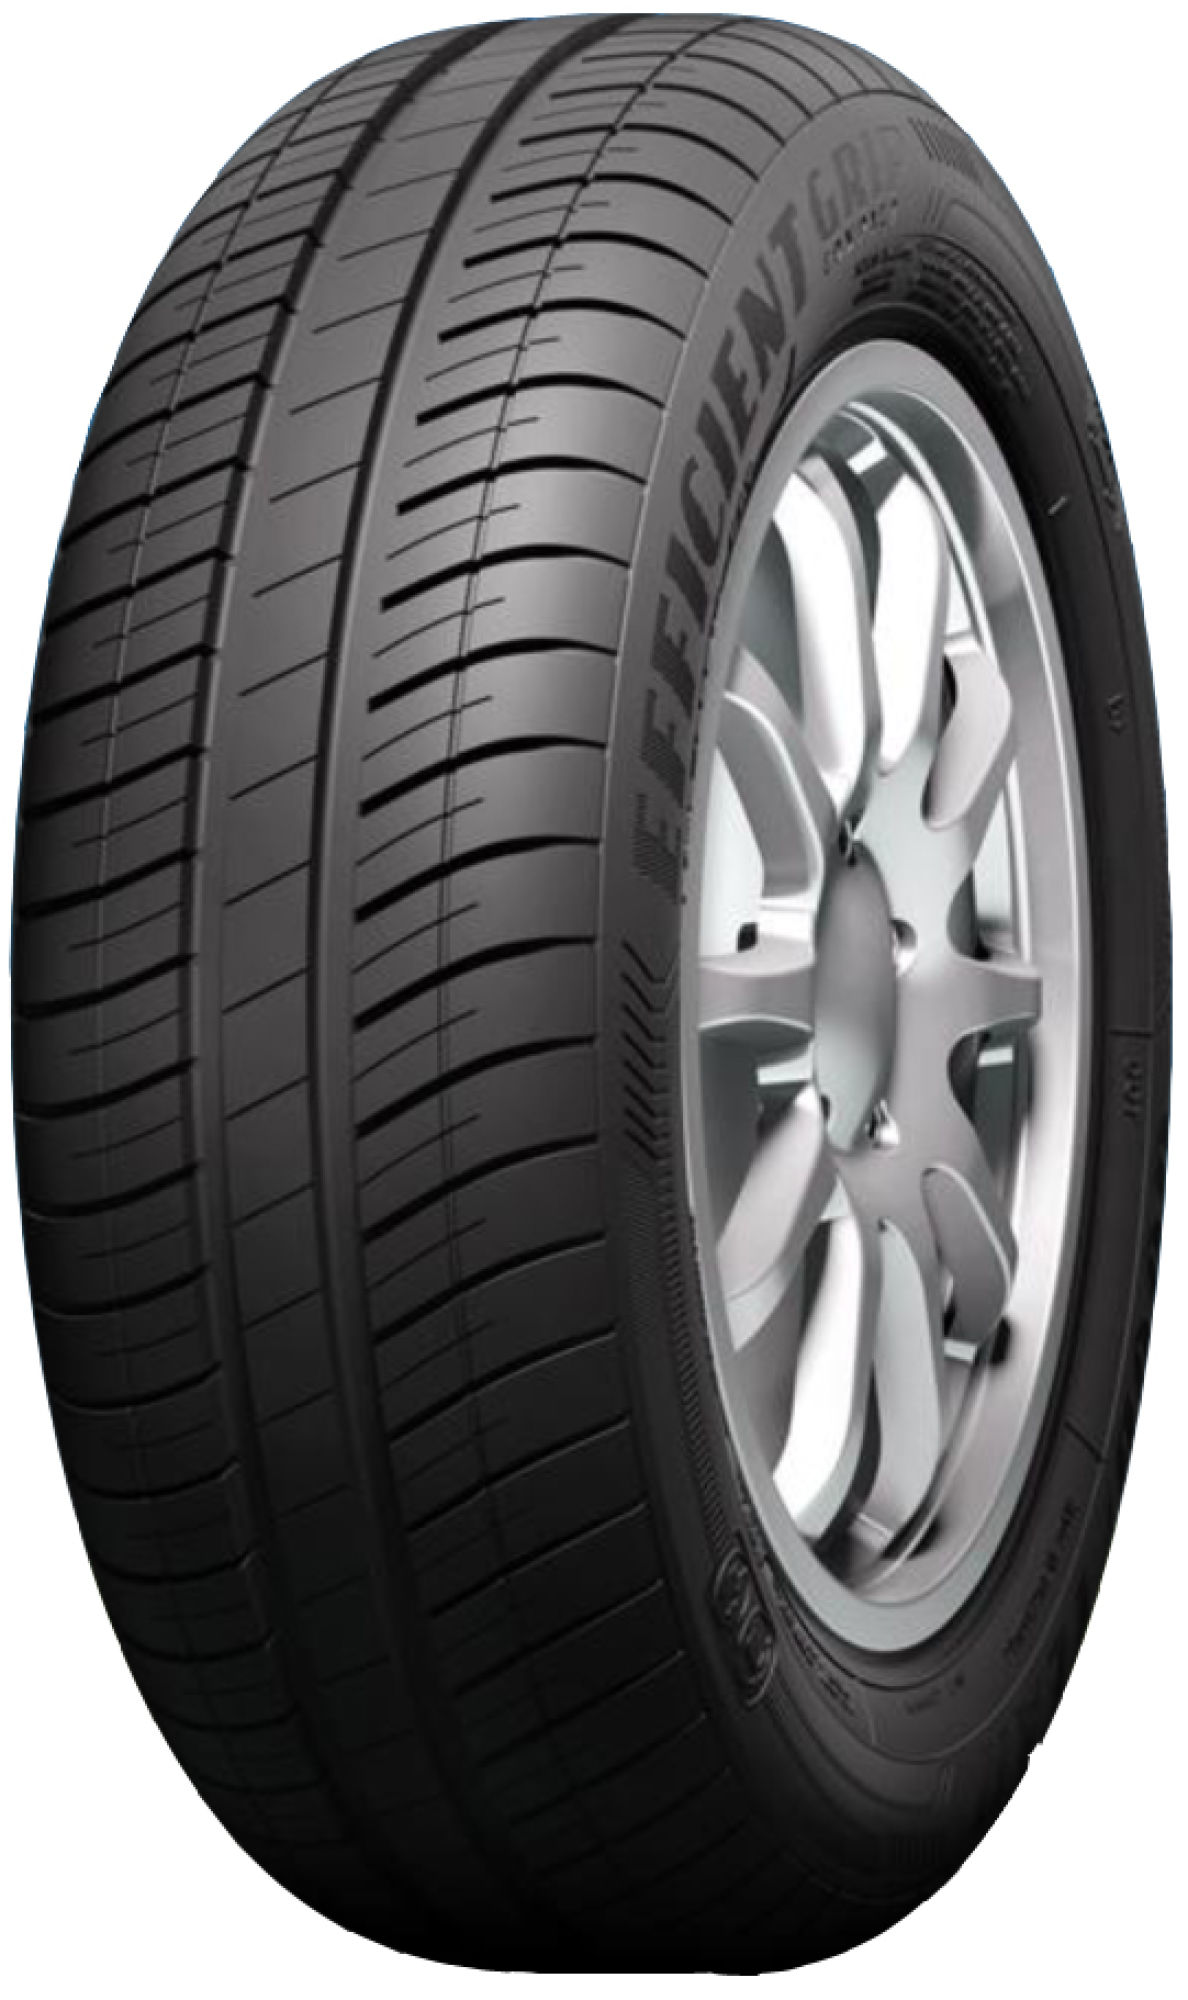 Шины - GoodYear EfficientGrip Compact